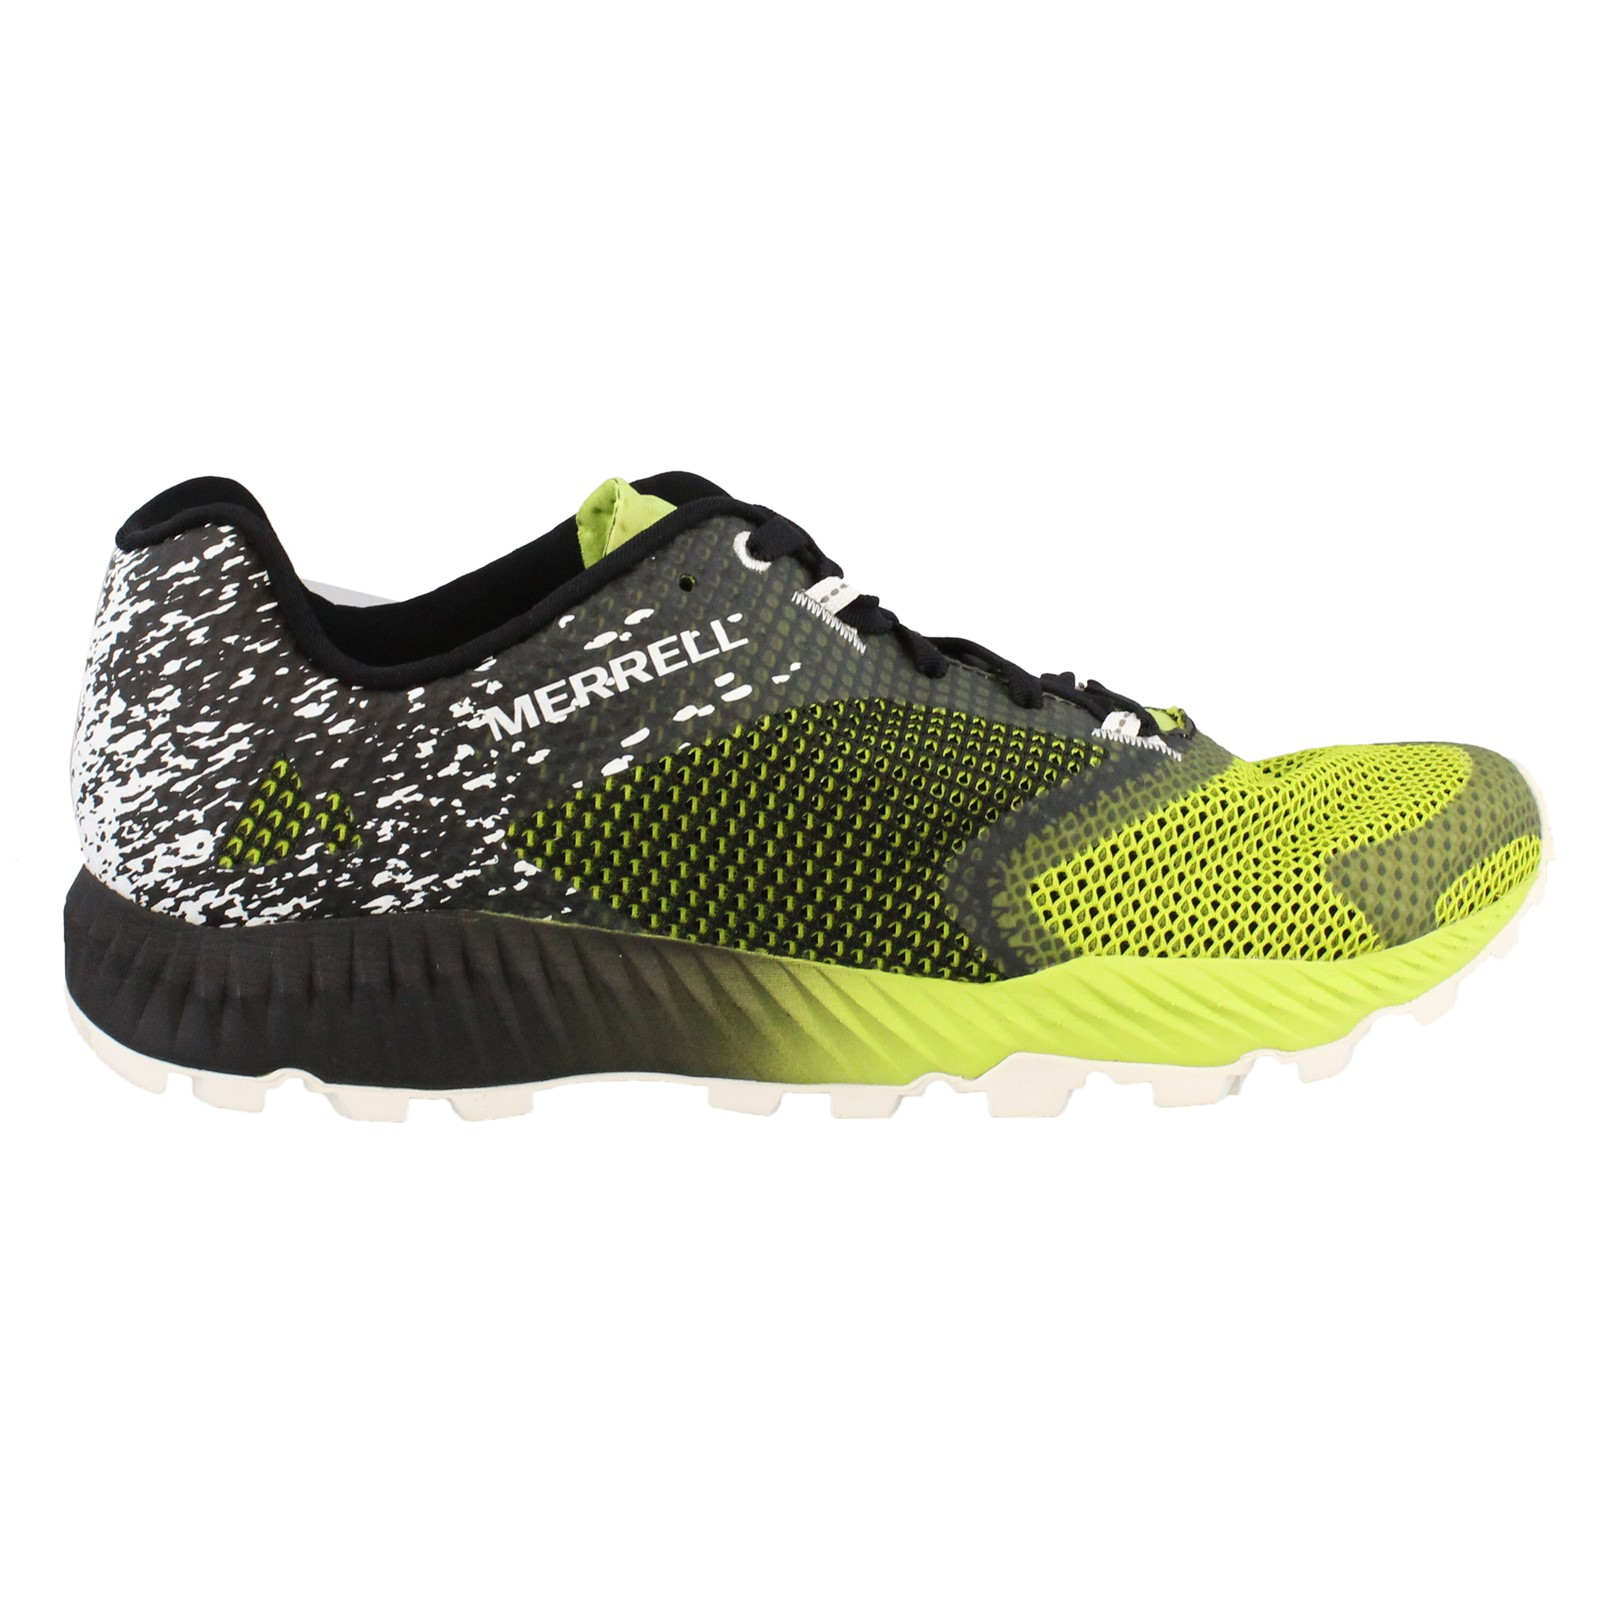 MERRELL All Out Crush 2 J12561 Trail Running Trainers Athletic Shoes Mens New